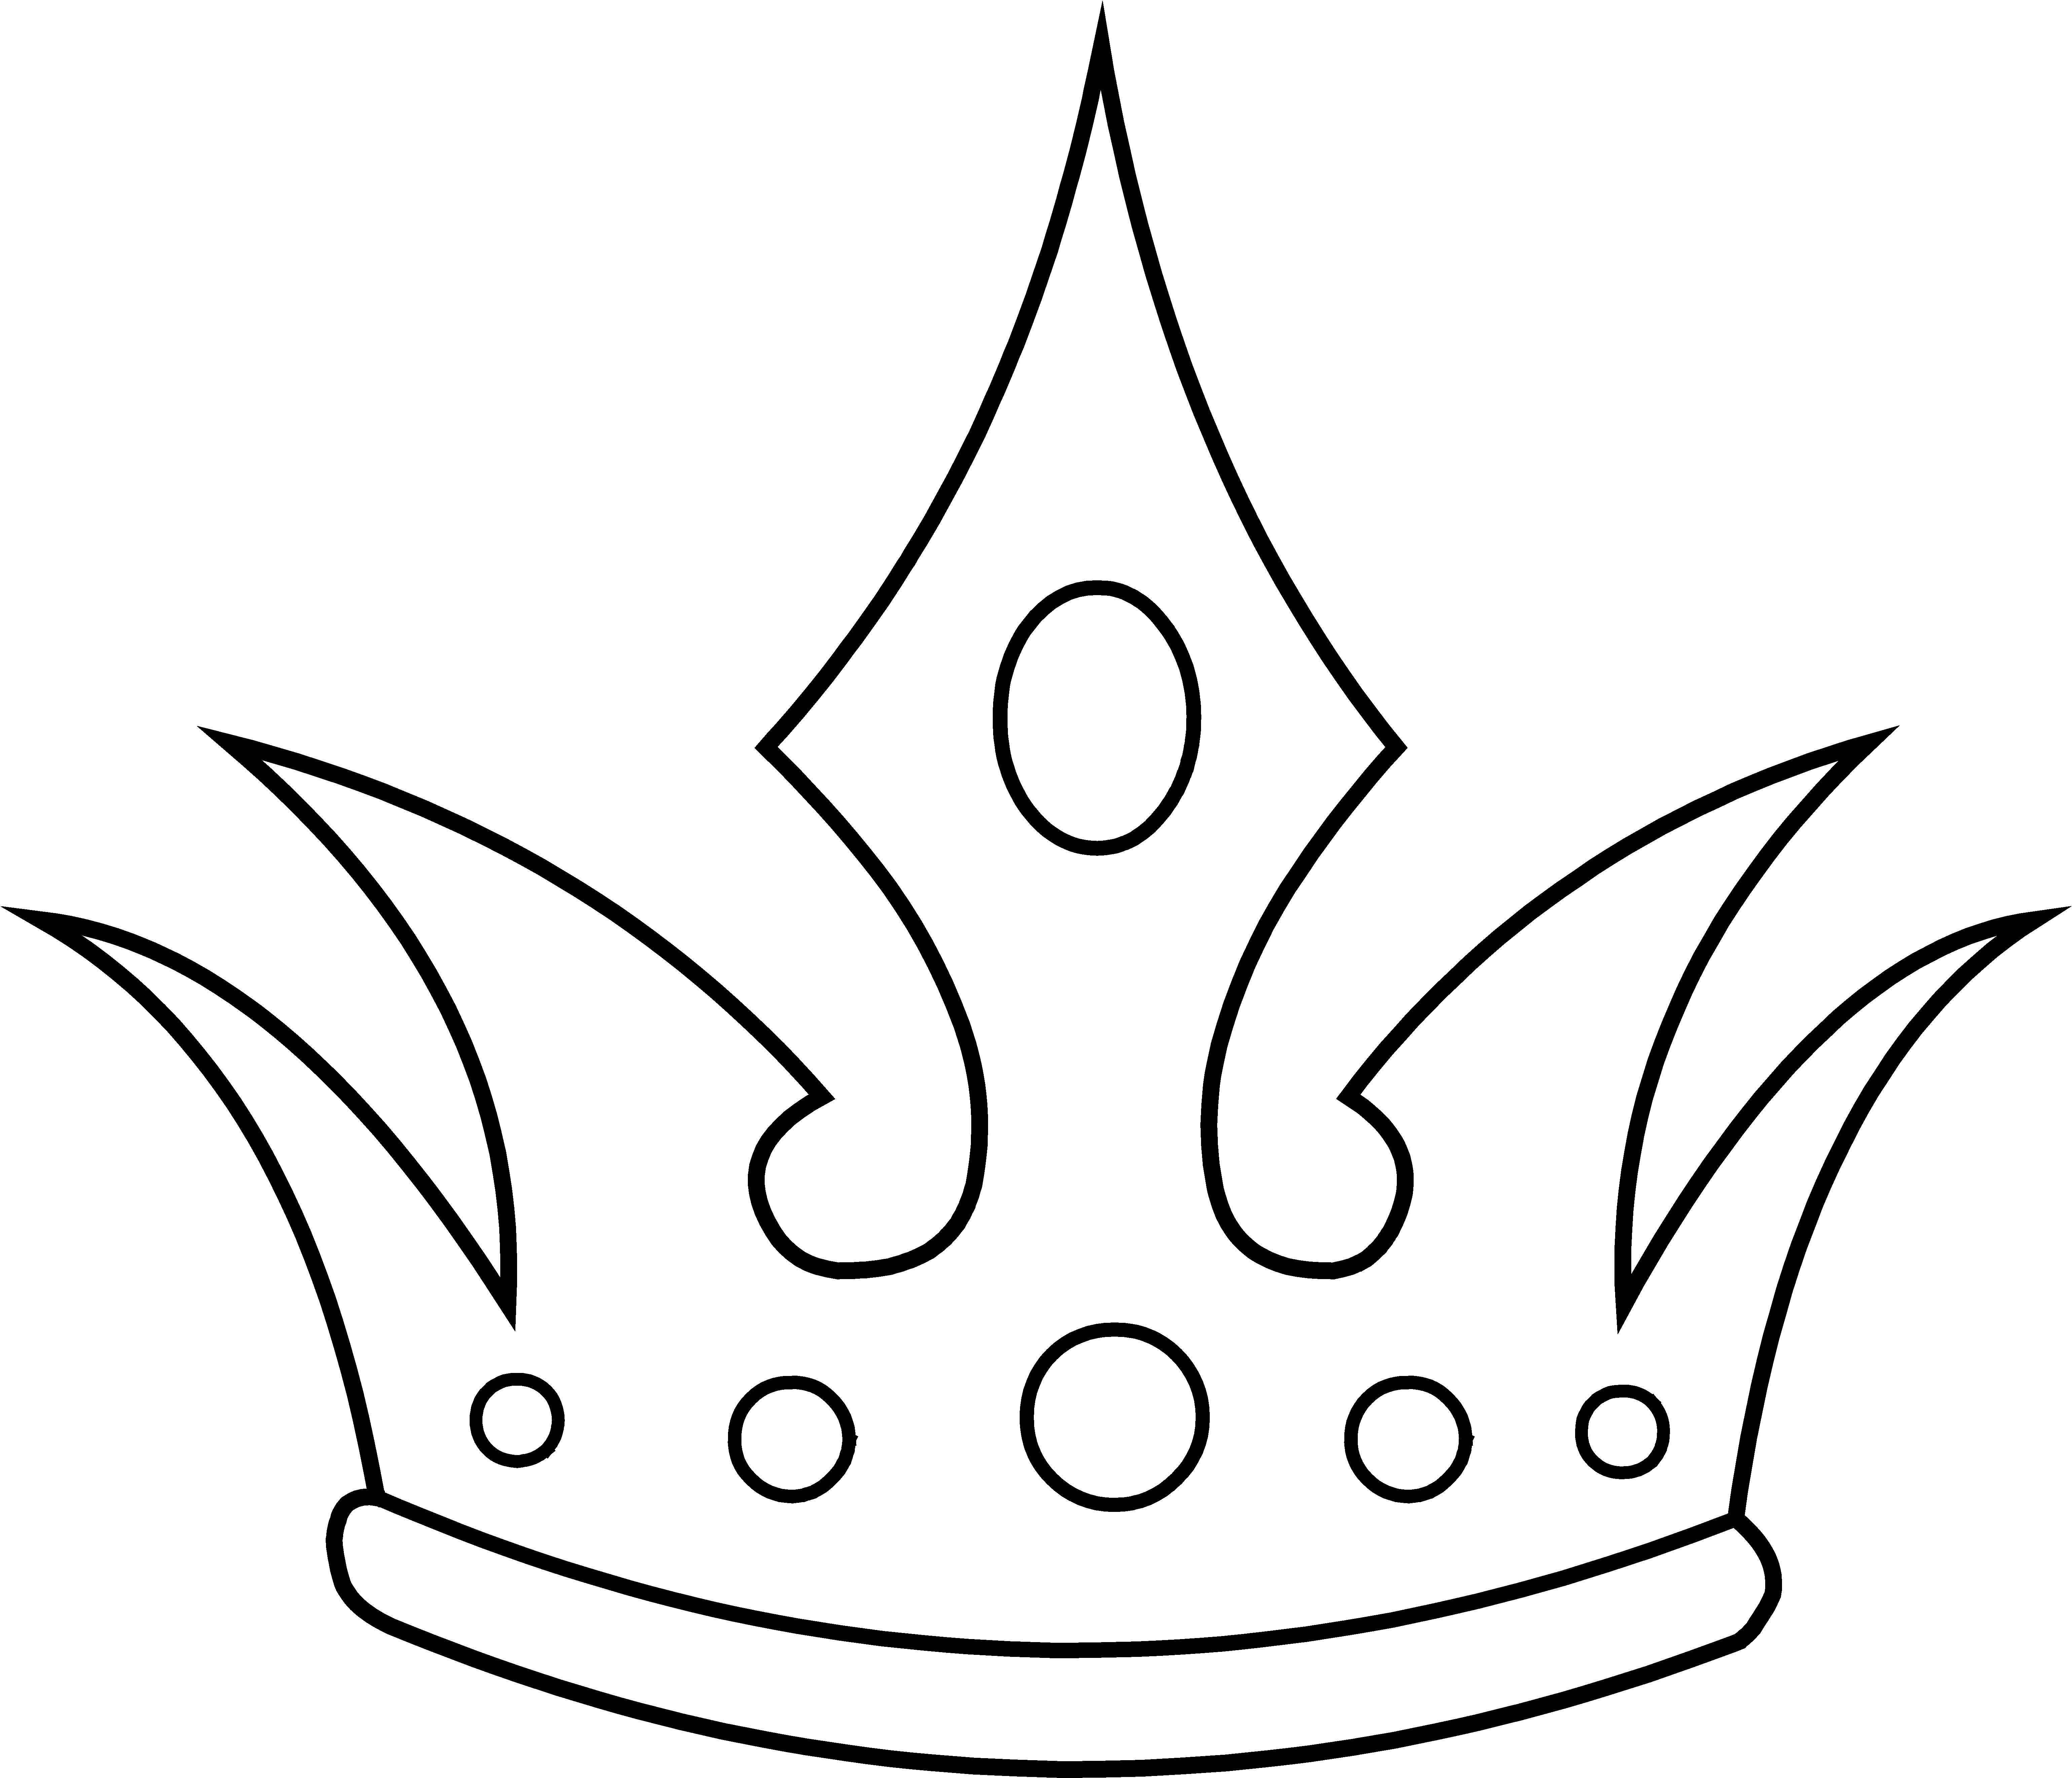 Royal Crown Clipart Black And White Queen Crown Clipart Black And